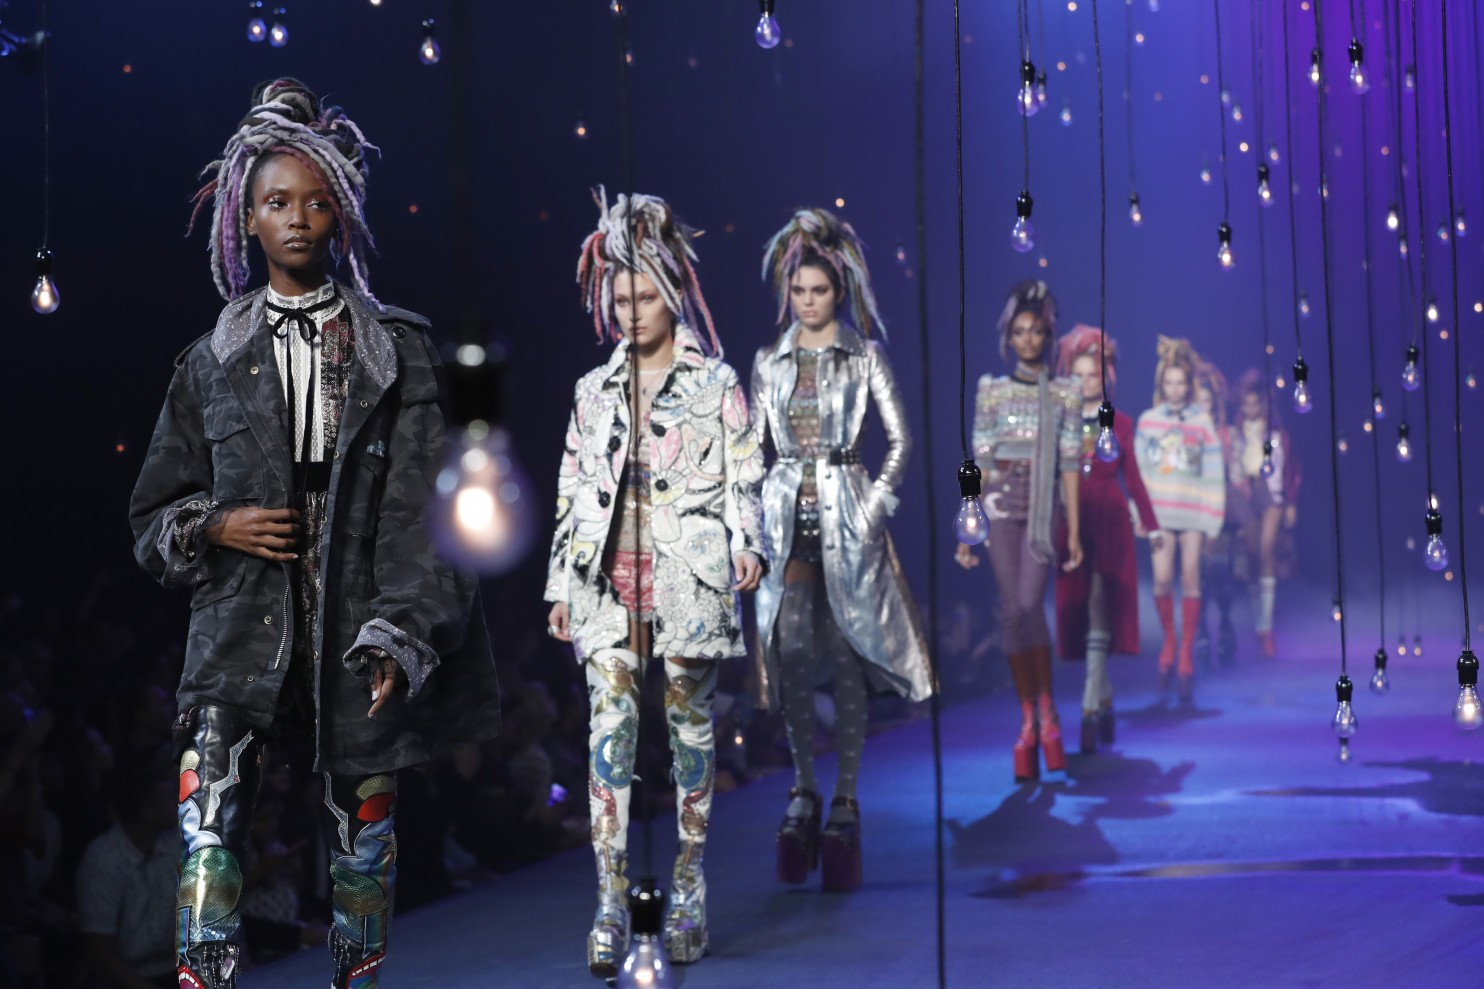 """FILE - In this Sept. 15, 2016, file photo, the Marc Jacobs Spring 2017 collection is modeled during Fashion Week in New York. Jacobs was criticized for showcasing white models in dreadlocks during the show. A screengrab showed Jacobs later responding on Instagram that he doesn't see color or race. In a separate post on Sunday, Sept. 18, 2016, Jacobs said he was sorry for """"the lack of sensitivity"""" in responding to critics. (Mary Altaffer, File/Associated Press)."""